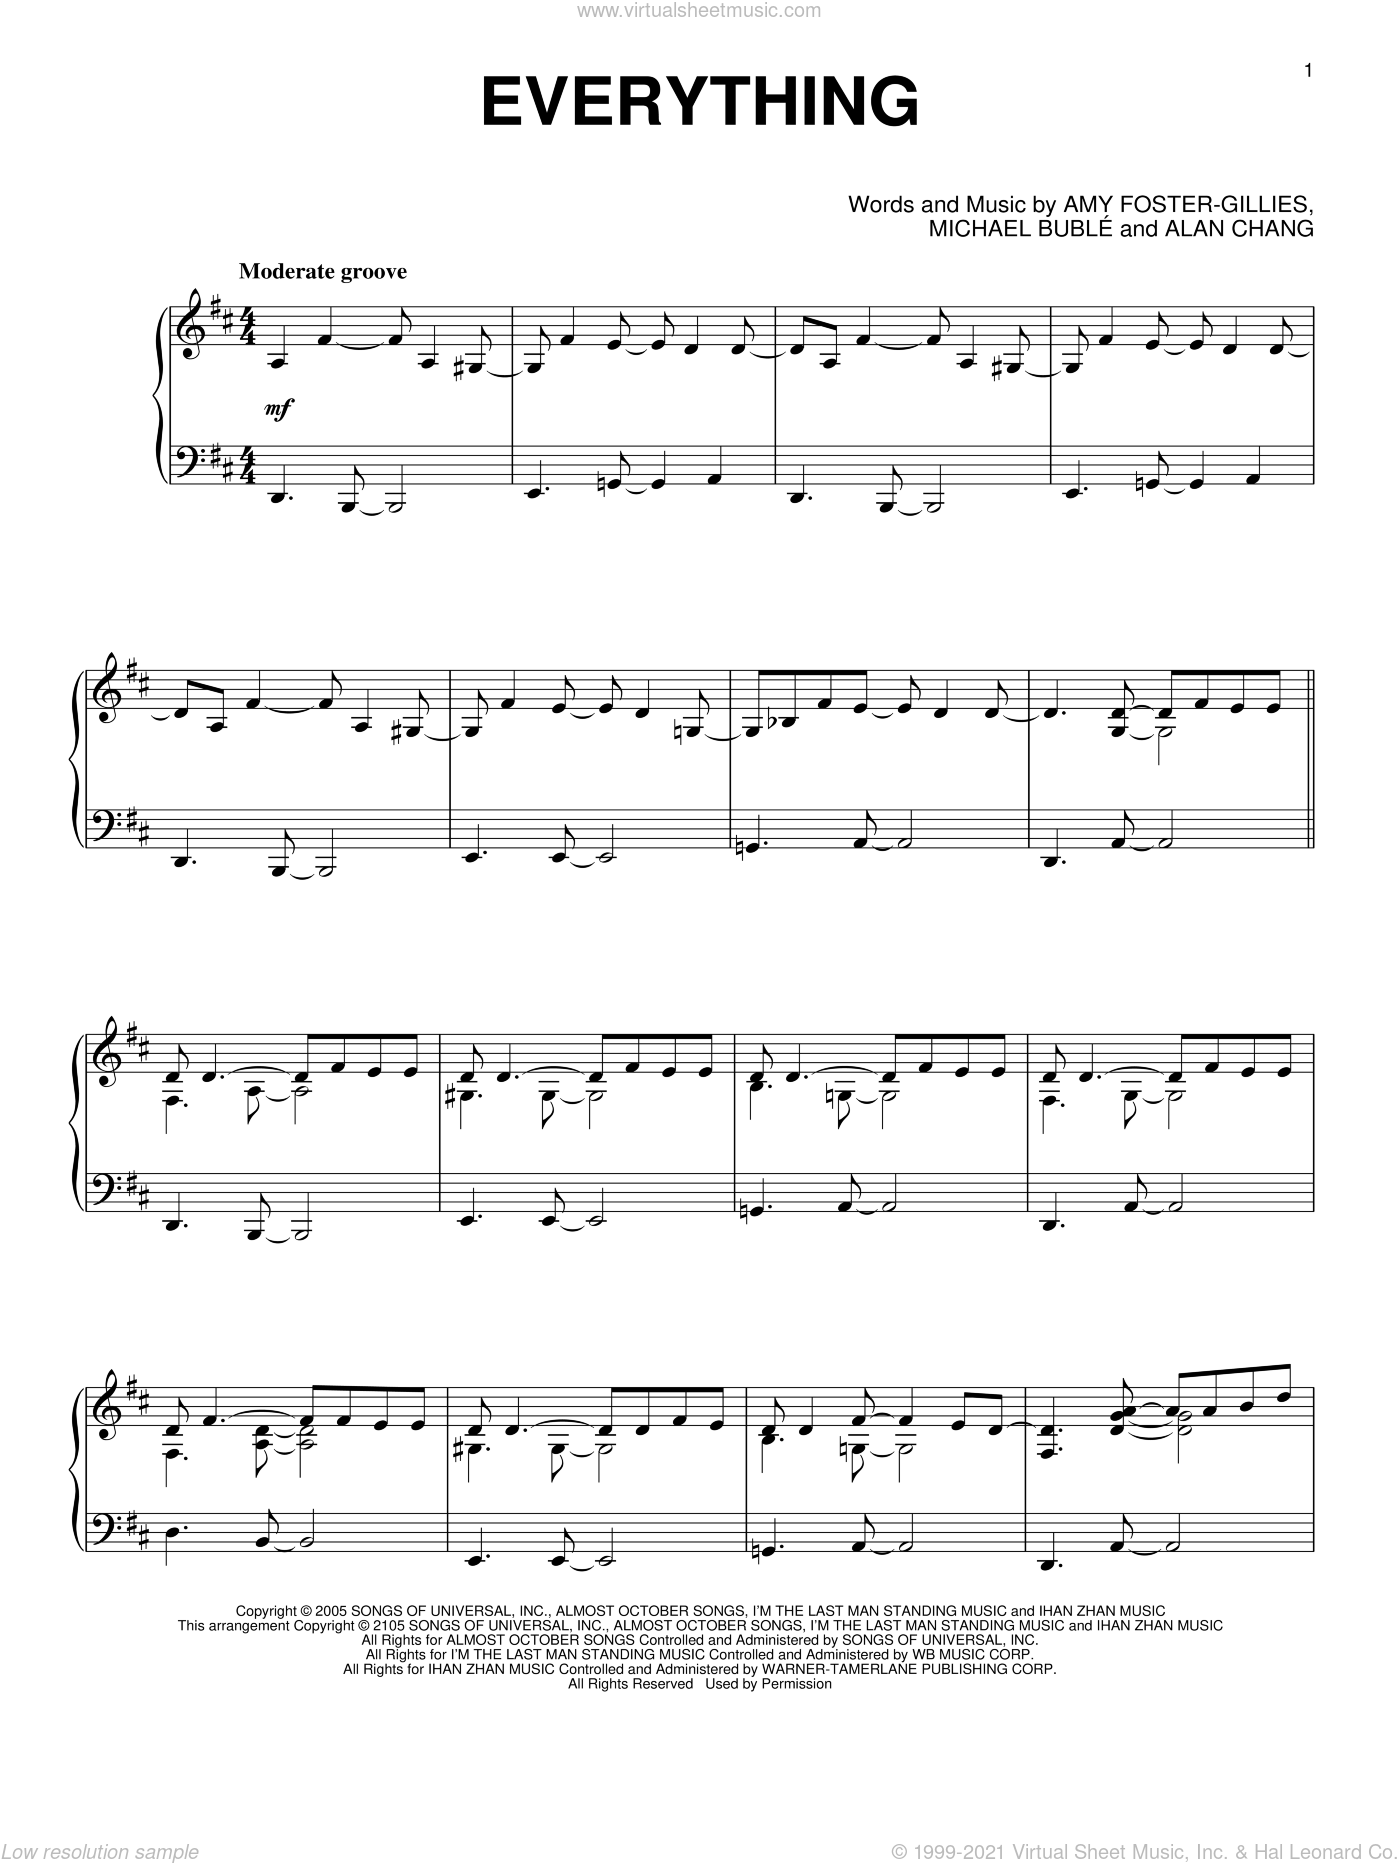 Everything, (intermediate) sheet music for piano solo by Michael Buble, Alan Chang and Amy Foster-Gillies, wedding score, intermediate skill level